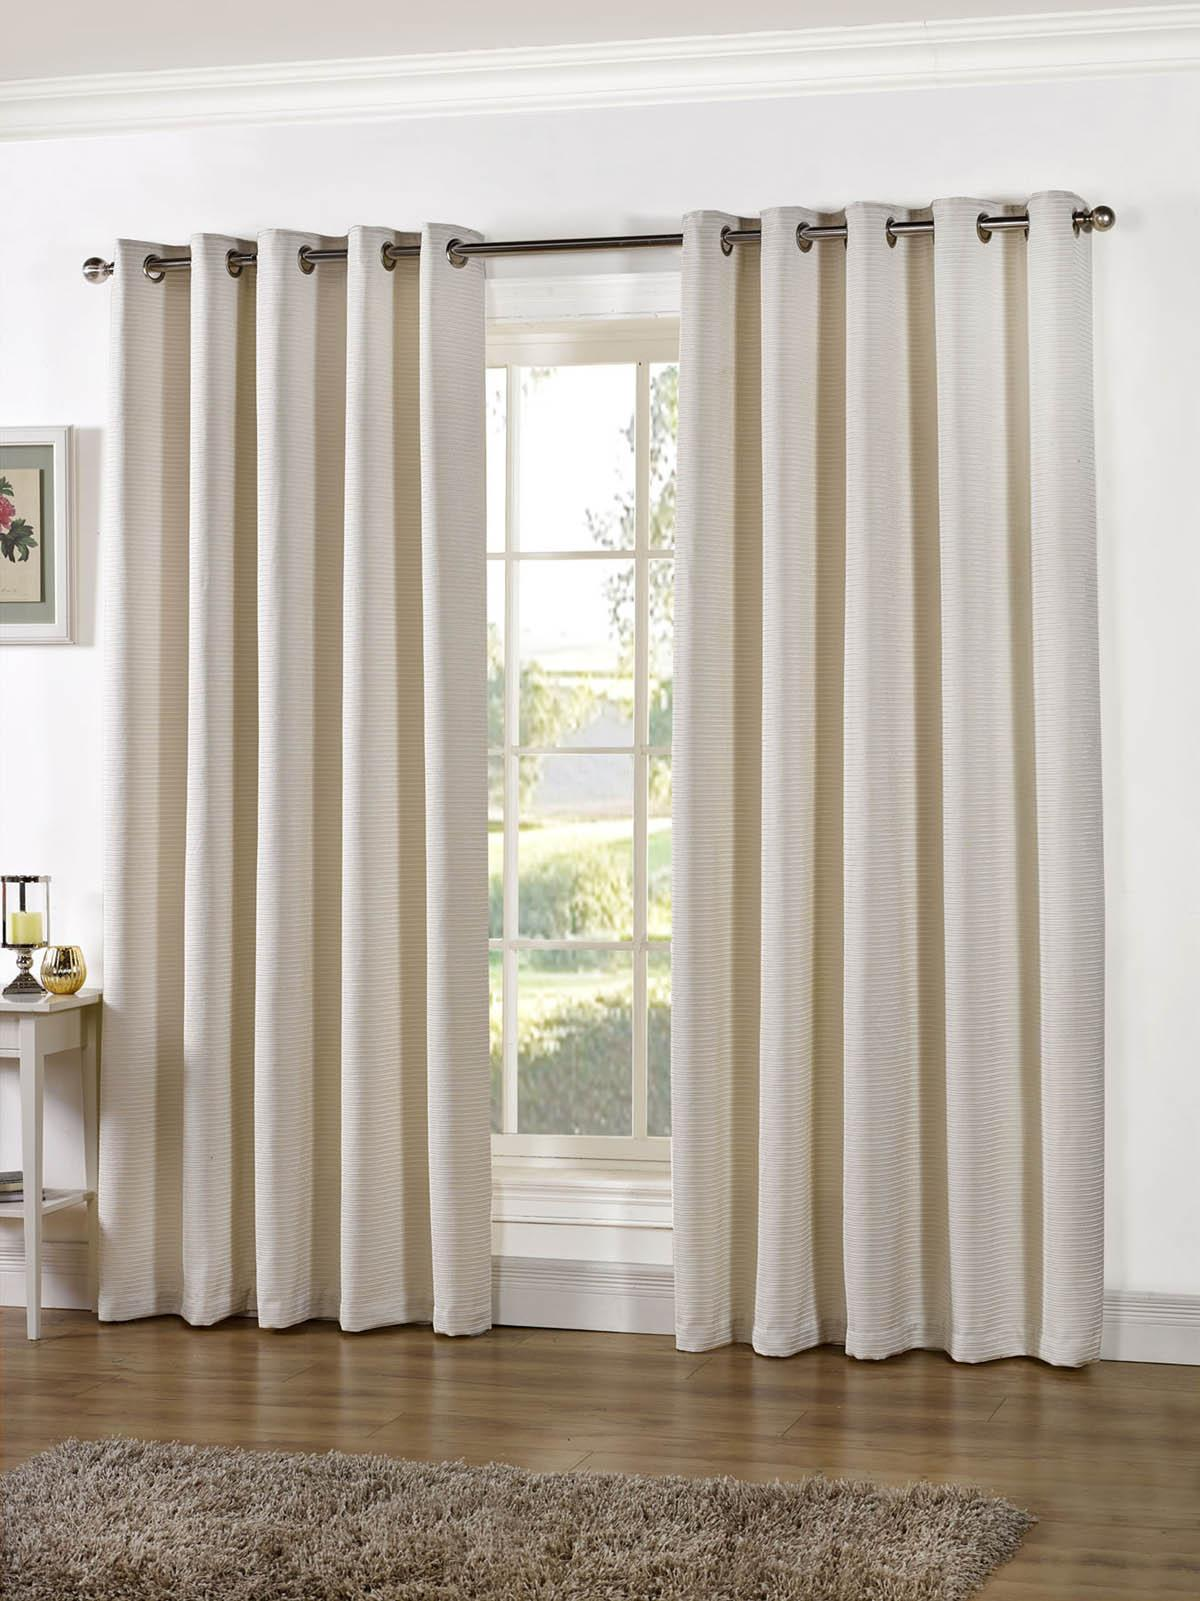 Stella Lined Eyelet Curtains Ivory | Free UK Delivery ...